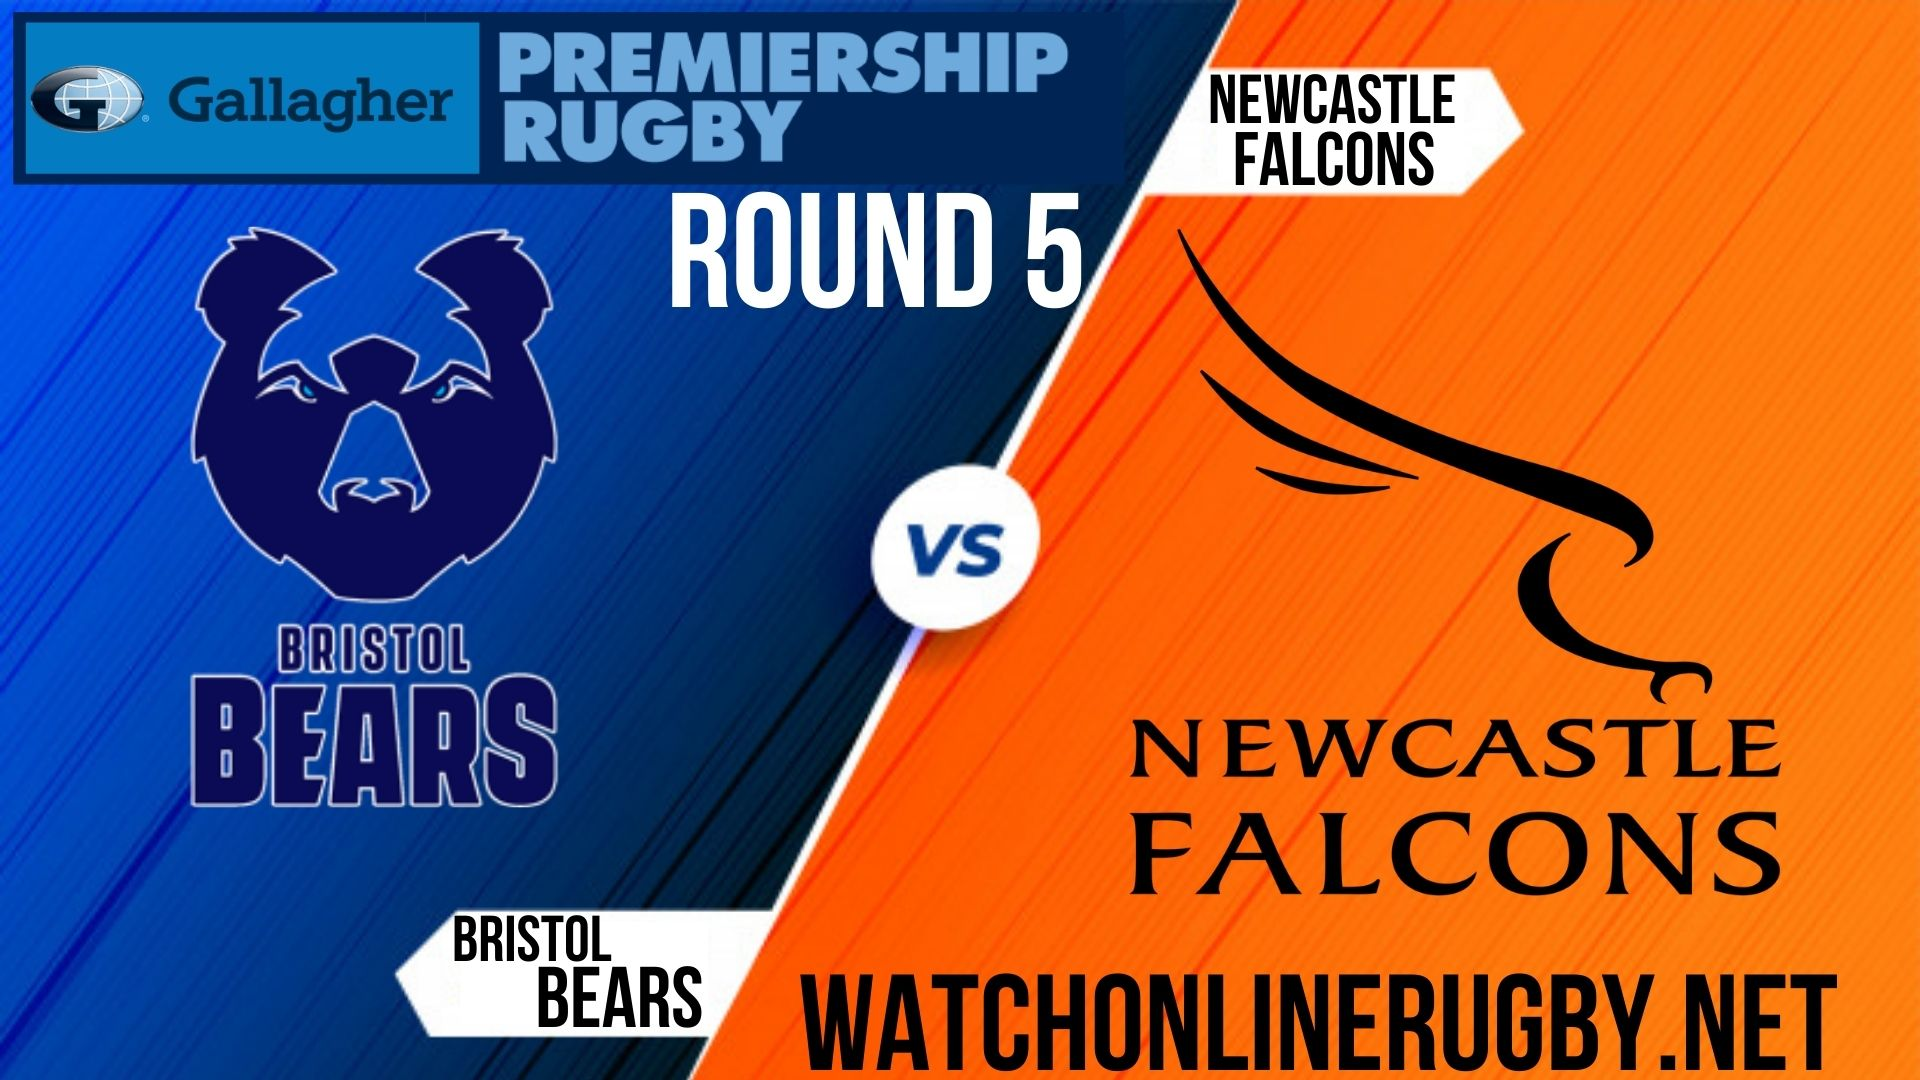 bristol-vs-newcastle-falcons-2016-rugby-live-telecast